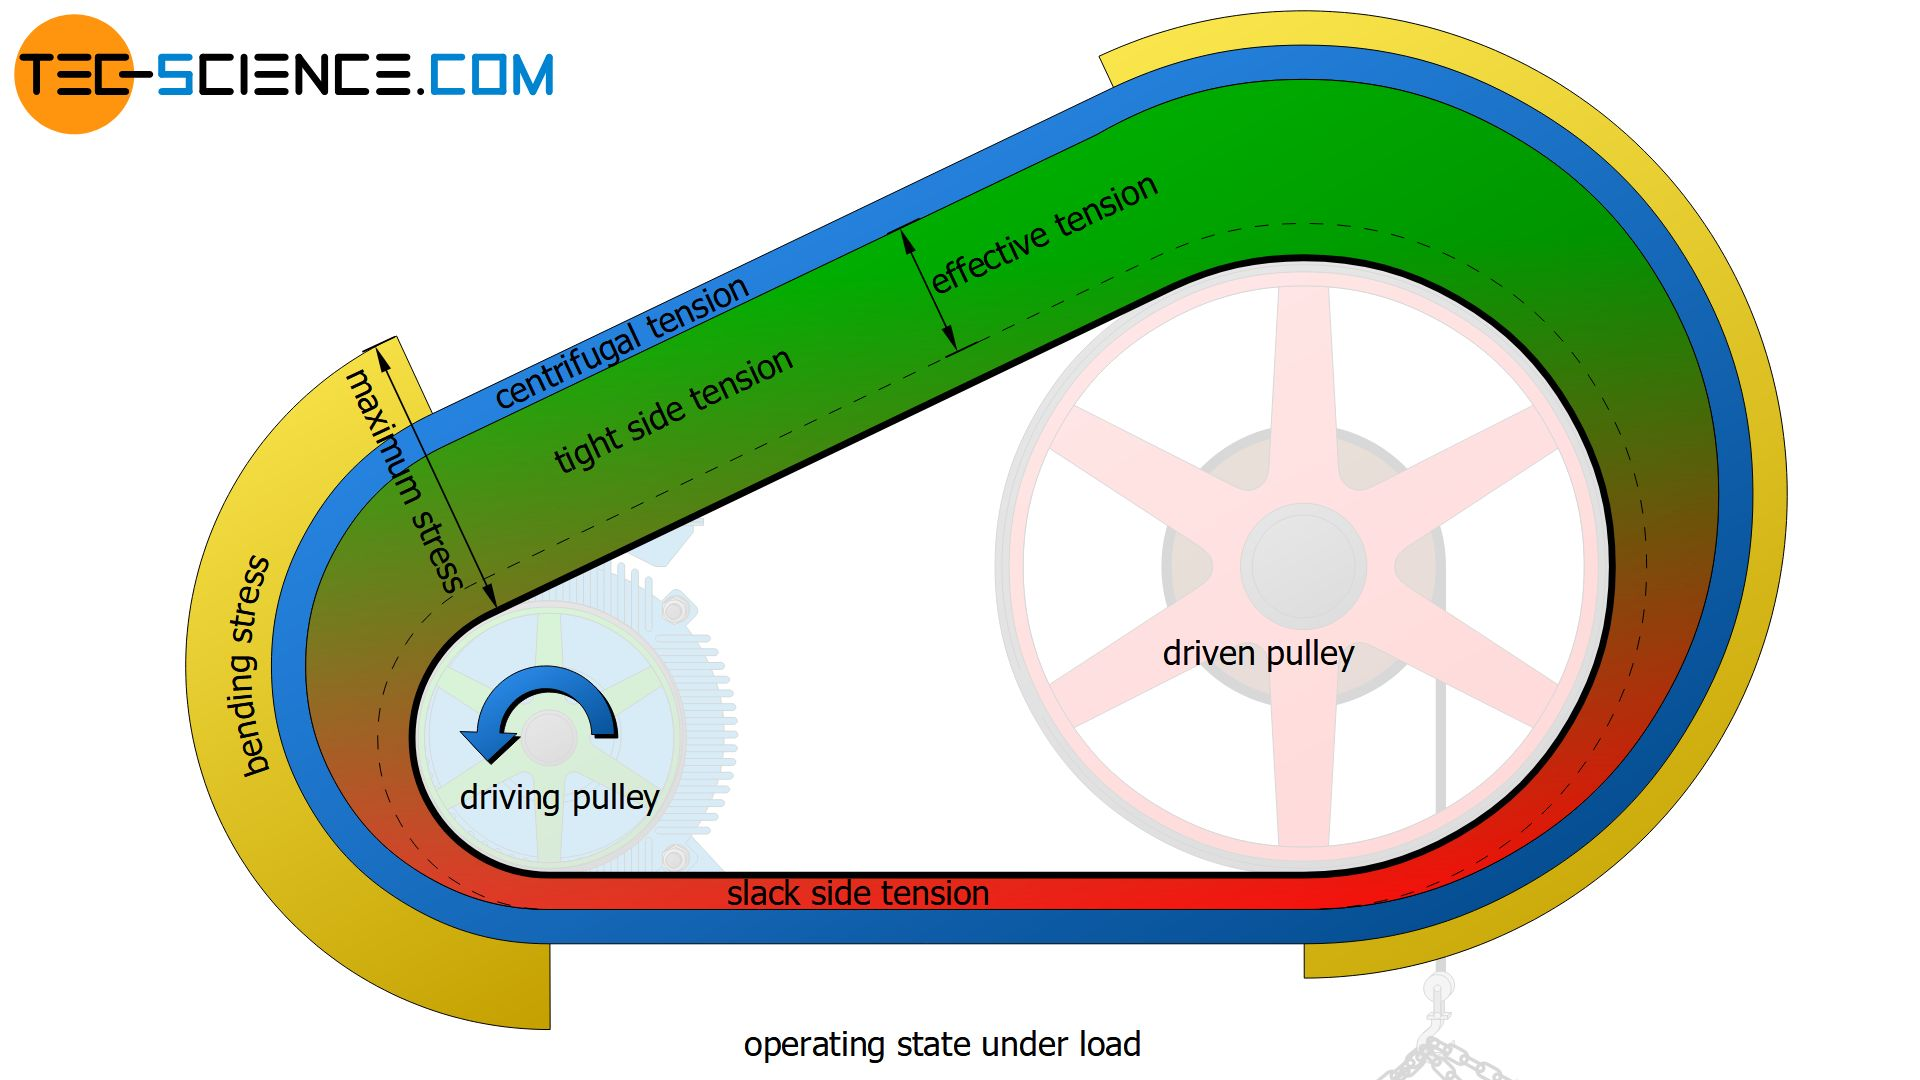 Stress distribution in the belt in the operating state under load